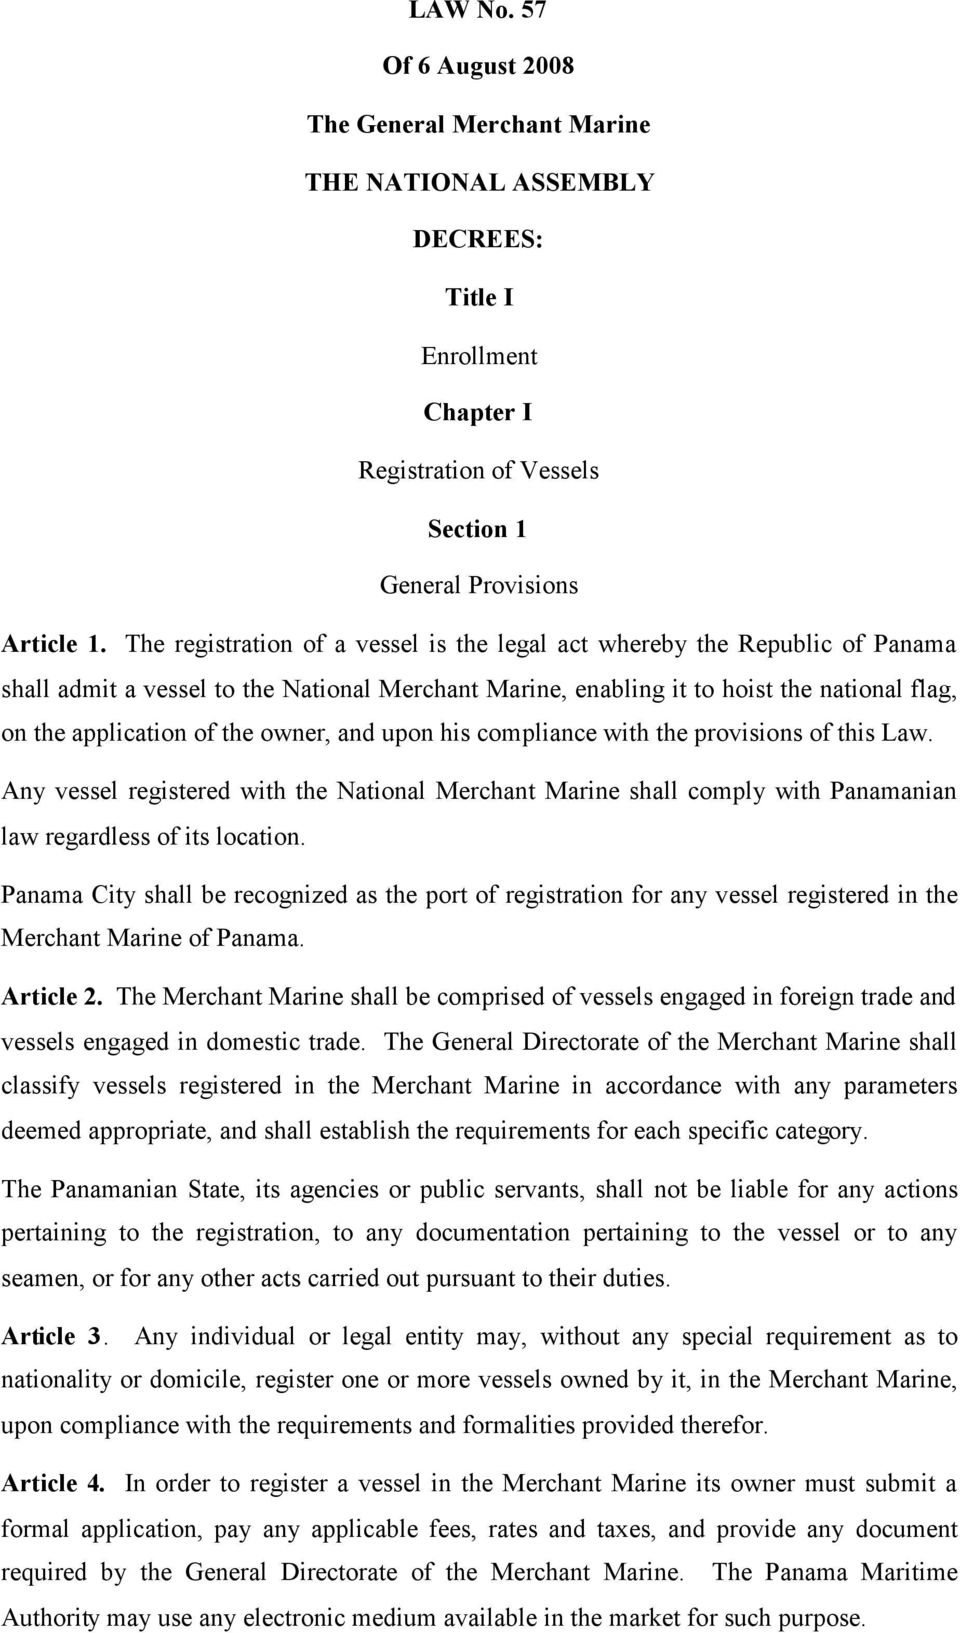 owner, and upon his compliance with the provisions of this Law. Any vessel registered with the National Merchant Marine shall comply with Panamanian law regardless of its location.